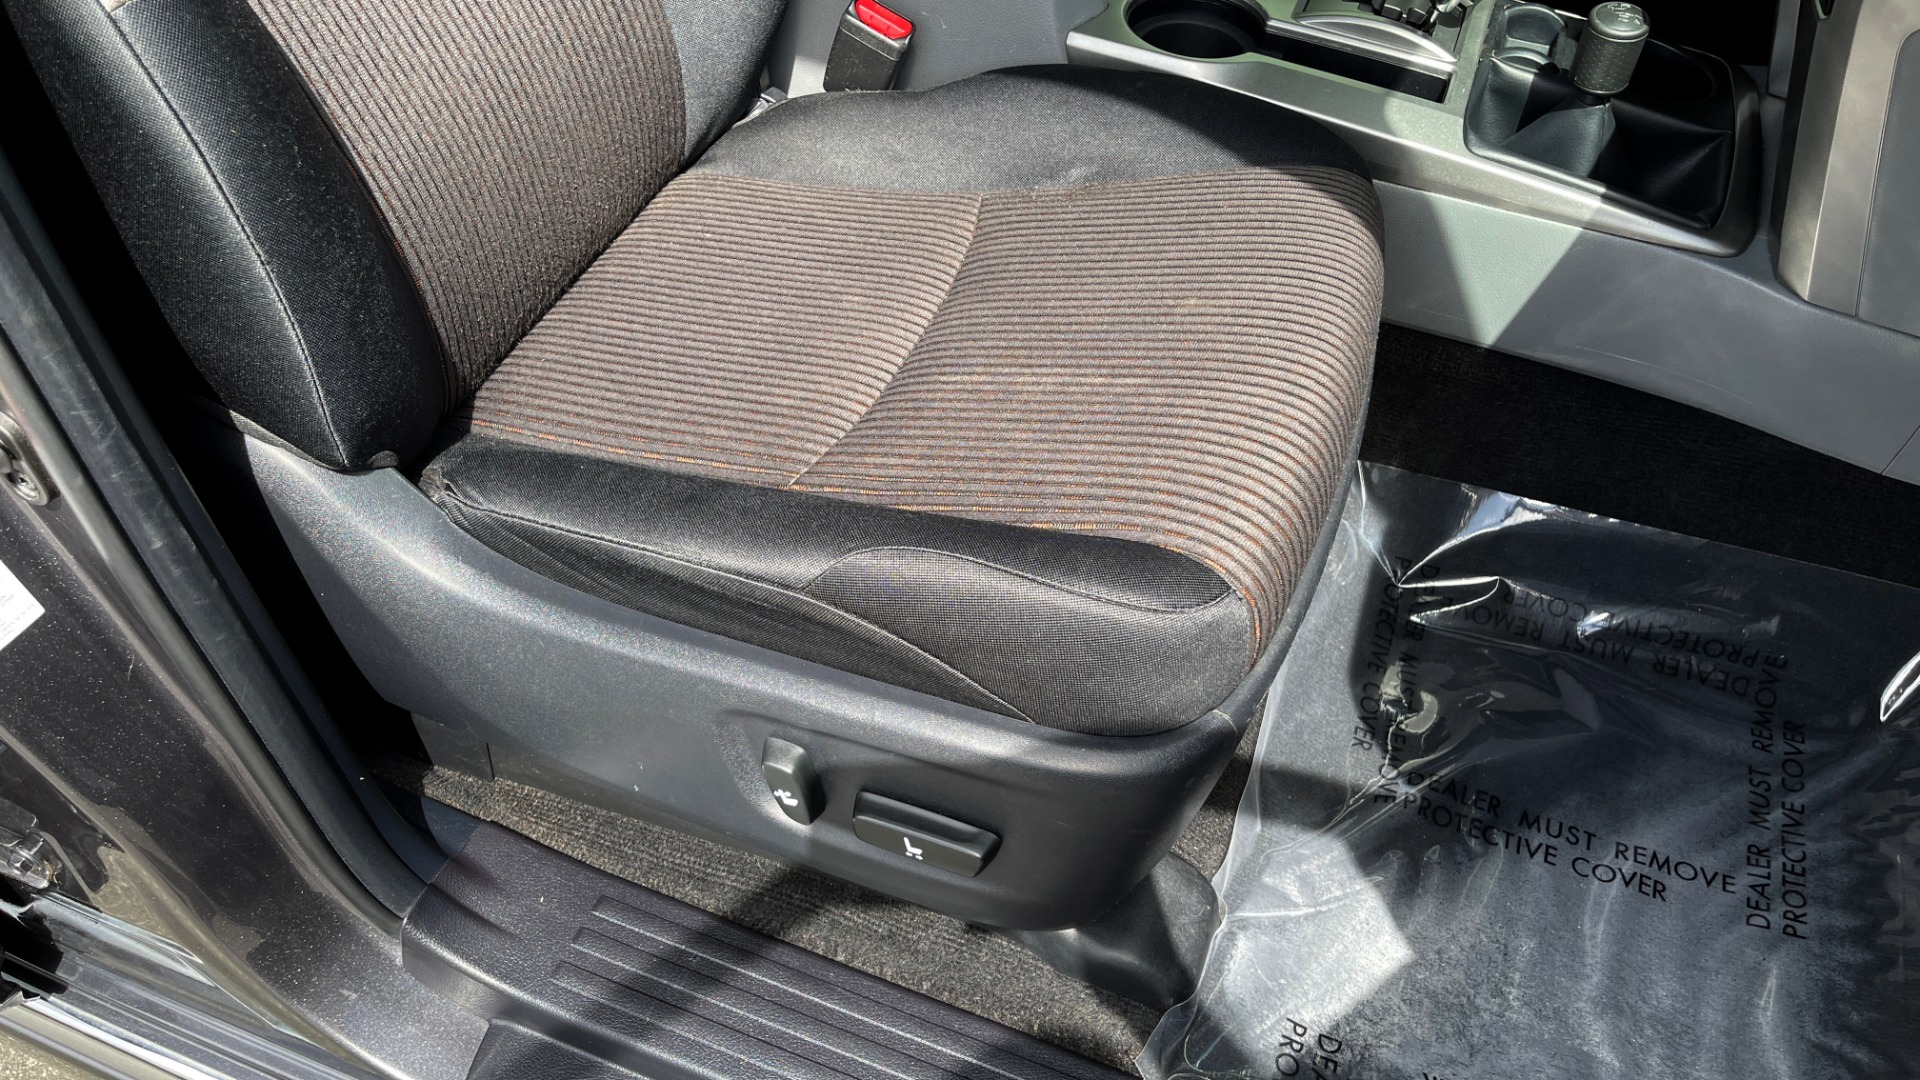 Used 2011 Toyota 4RUNNER SR5 4X4 V6 / 5-SPD AUTO / SUNROOF / POWER FRONT SEATS for sale $19,999 at Formula Imports in Charlotte NC 28227 58